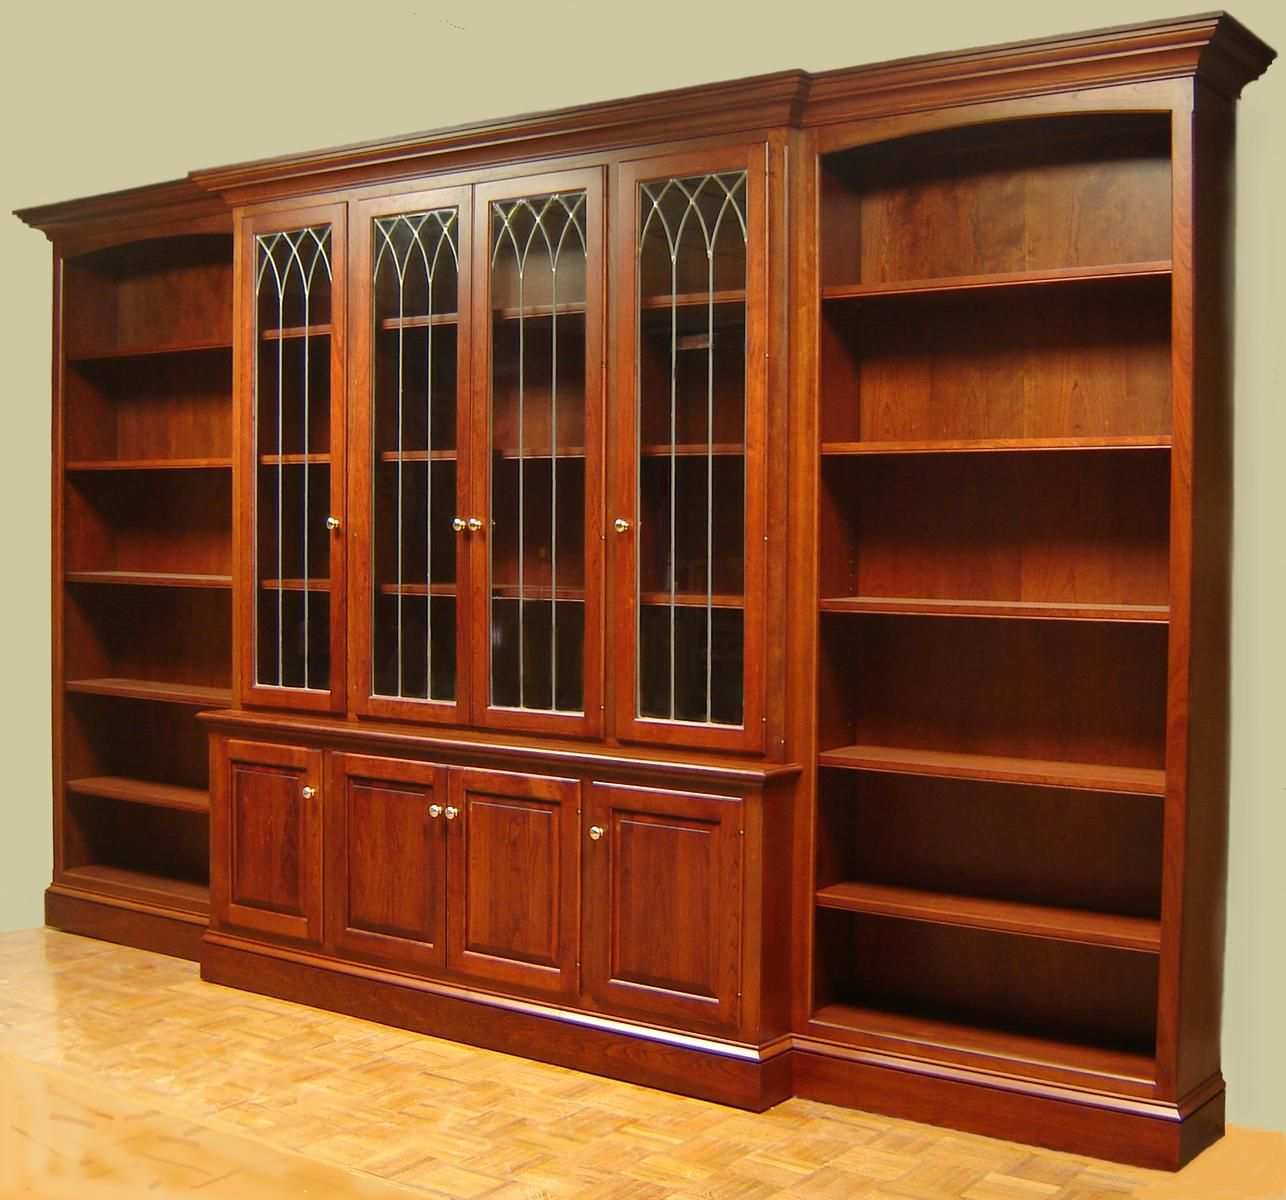 Image of: Large Bookcases with Doors